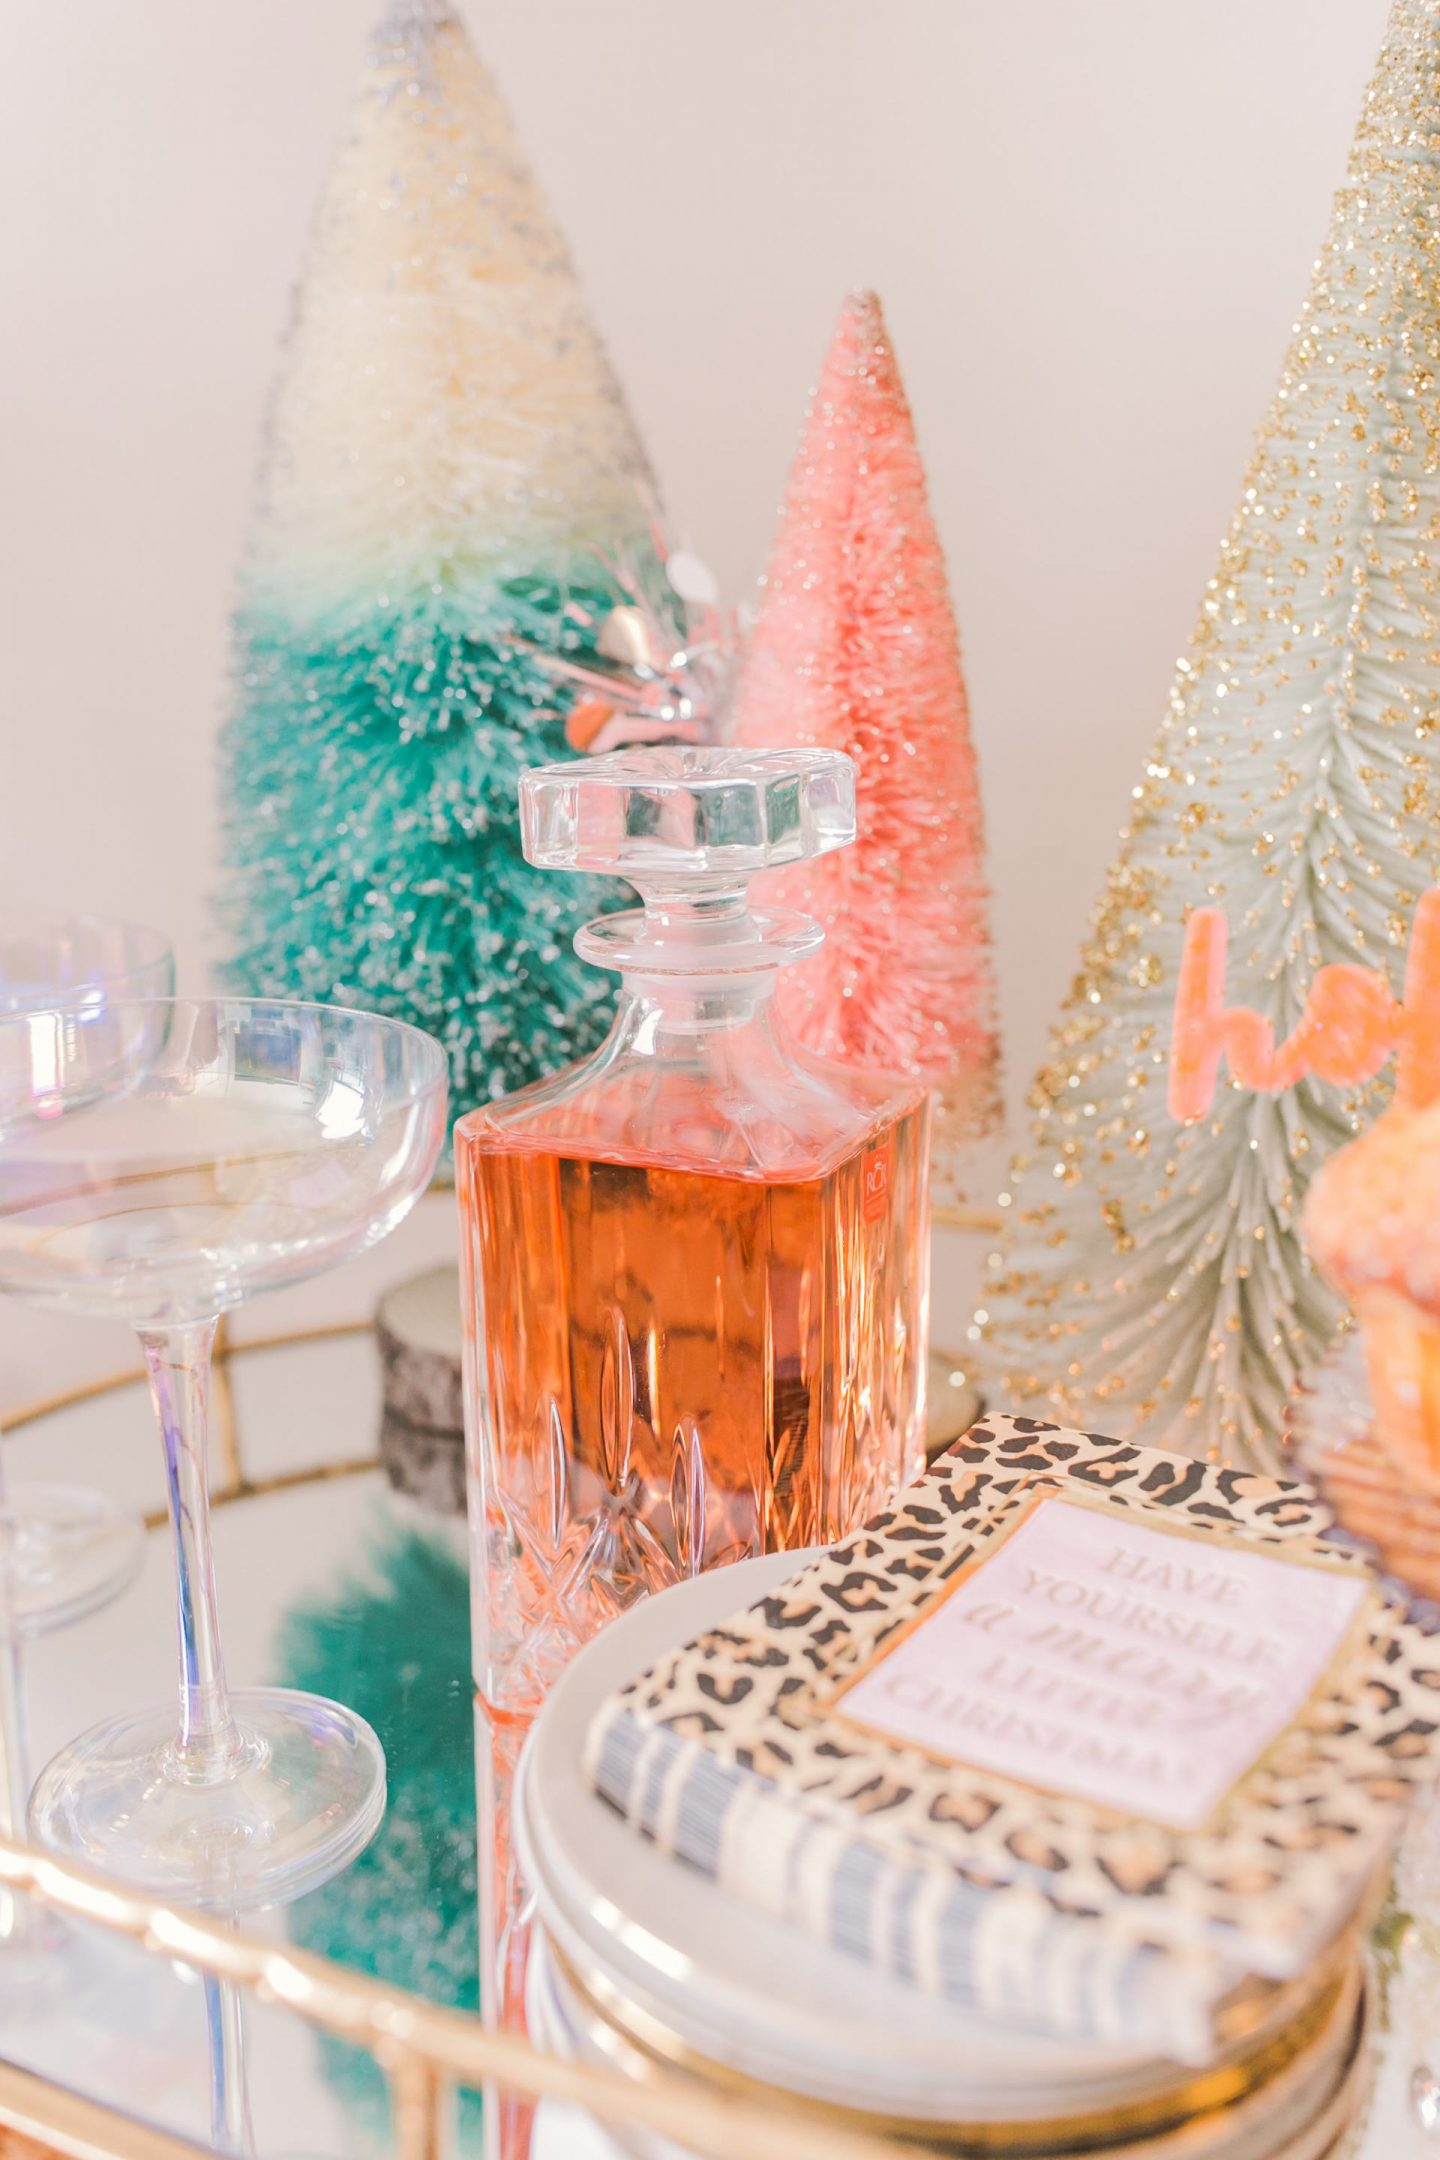 5 Easy Tips How To Style Your Holiday Bar Cart - Bijuleni